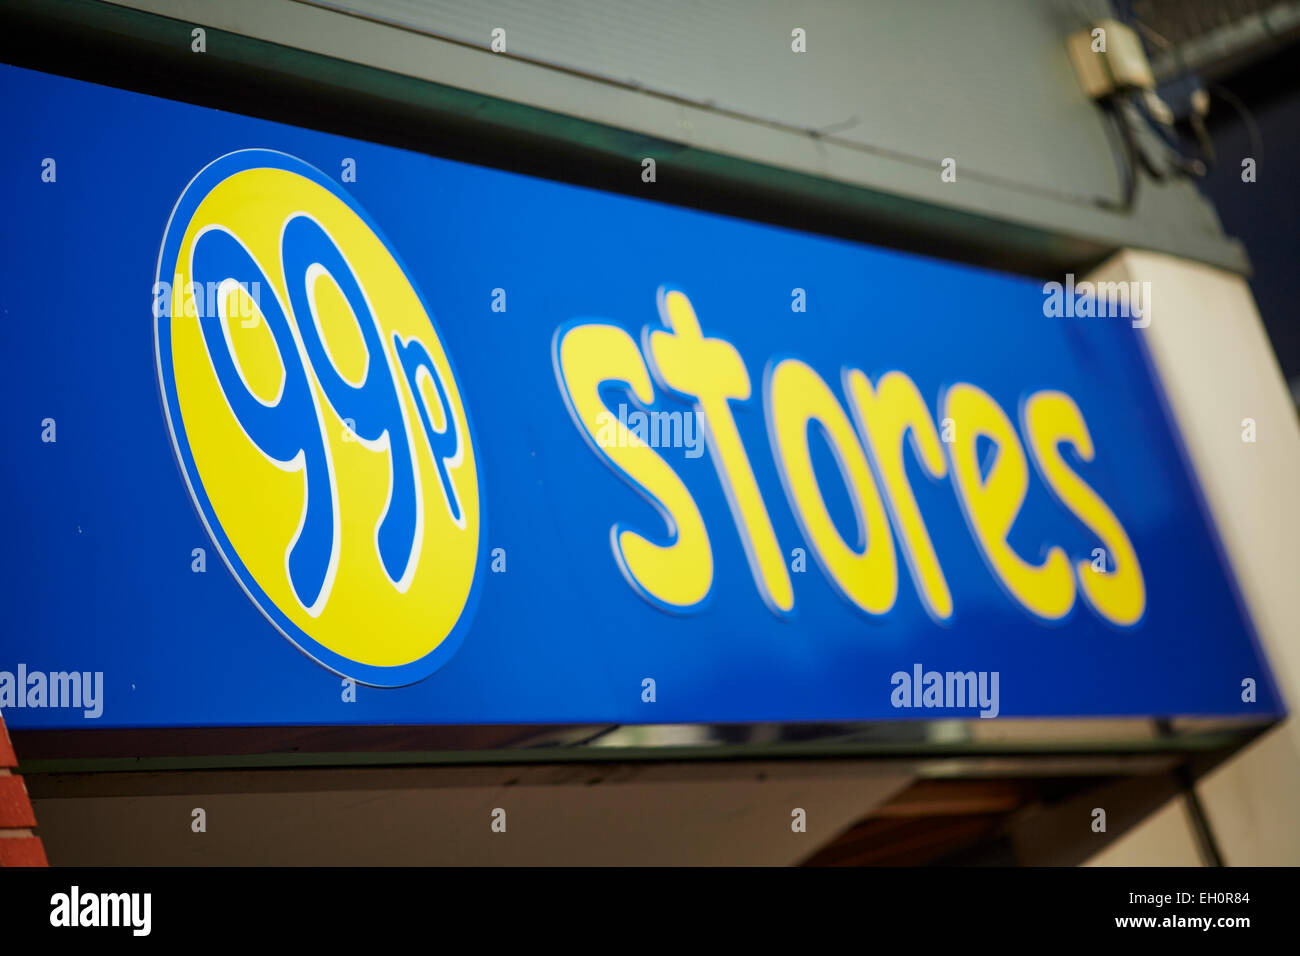 99p store shop sign exterior - Stock Image